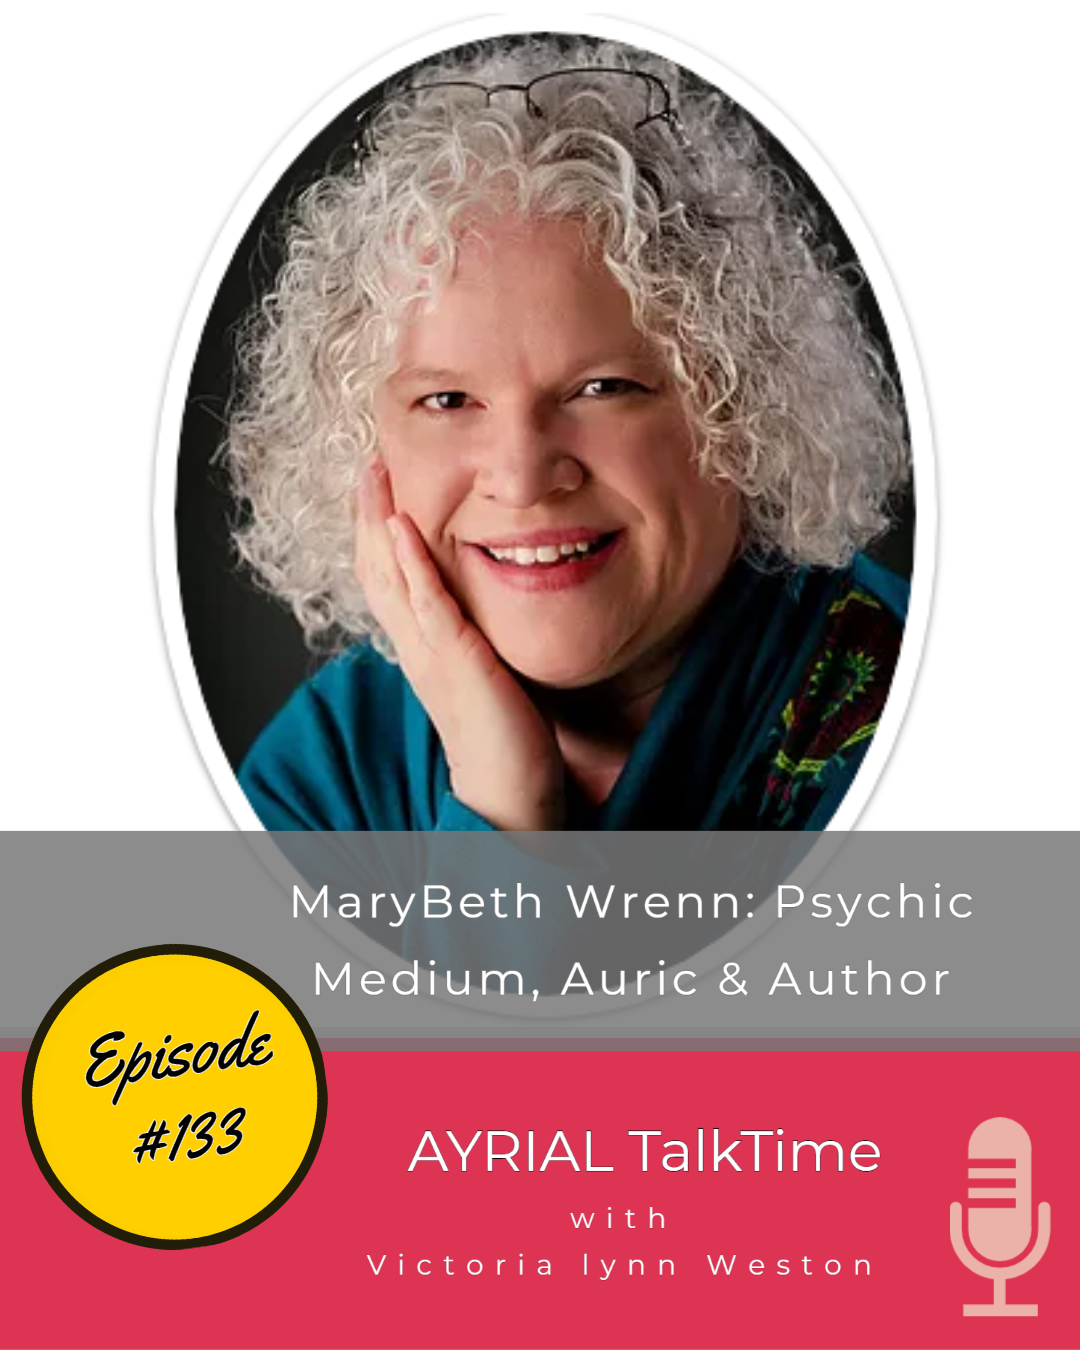 marybeth wrenn podcast